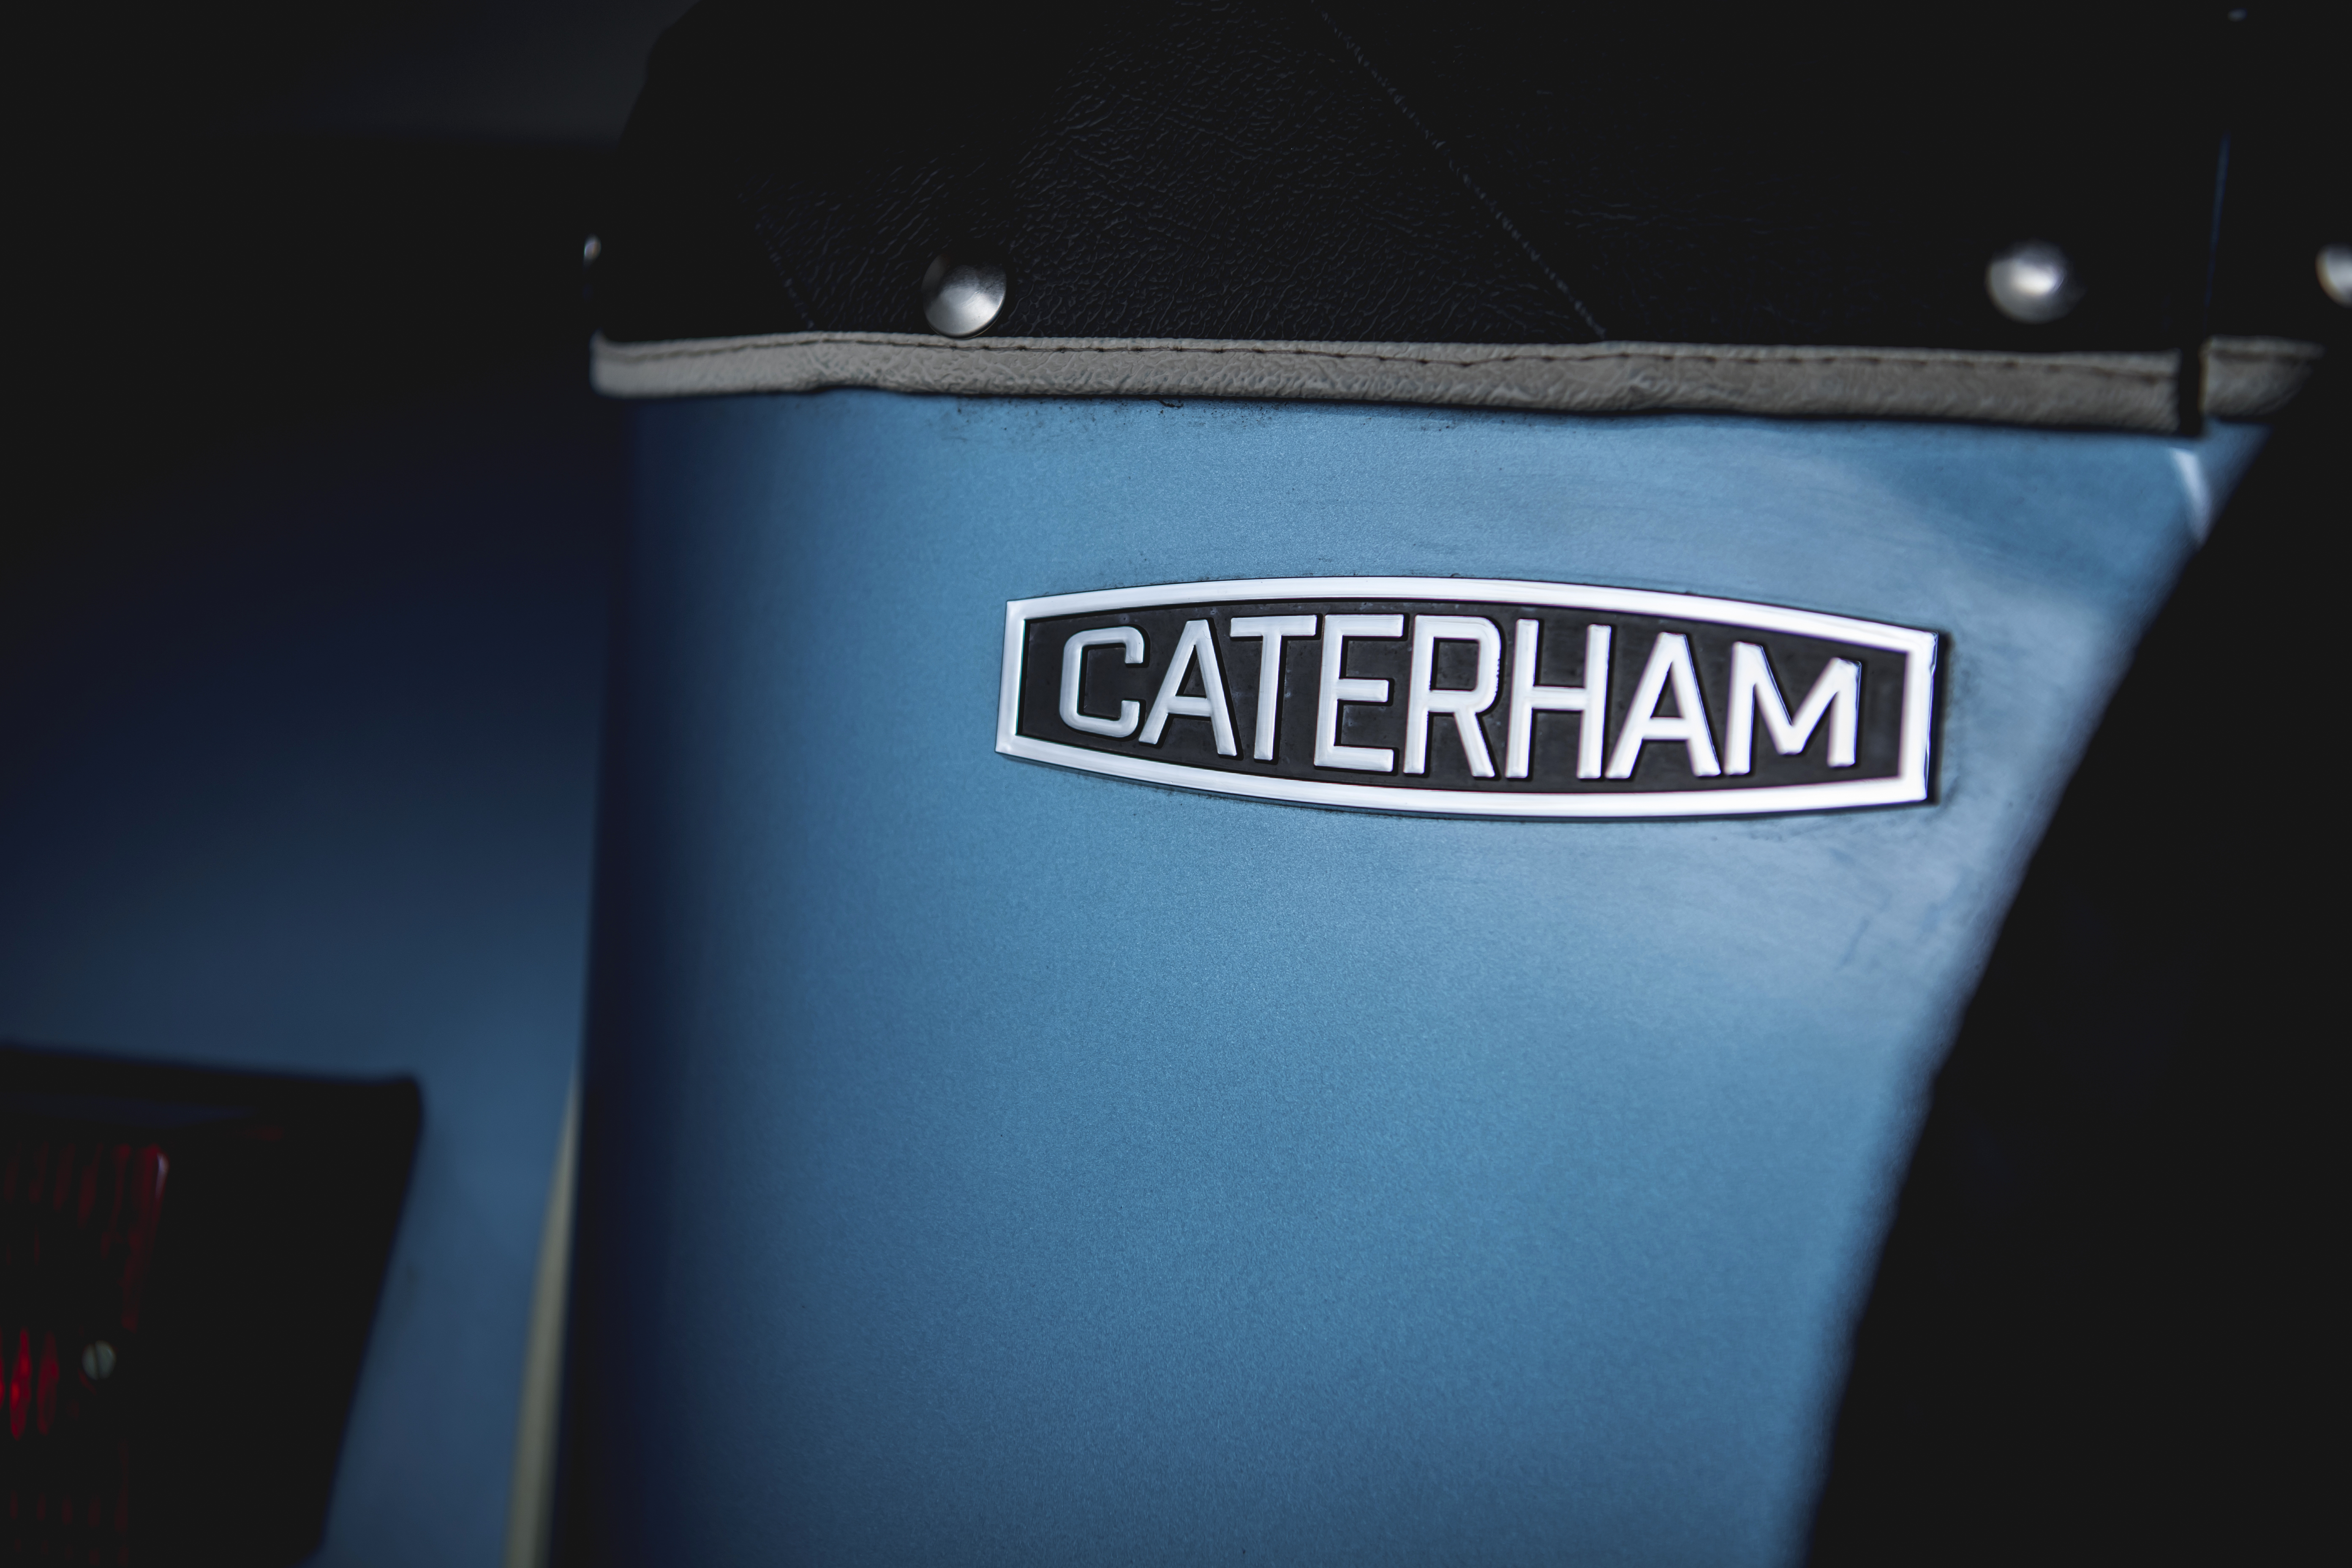 Caterham detail